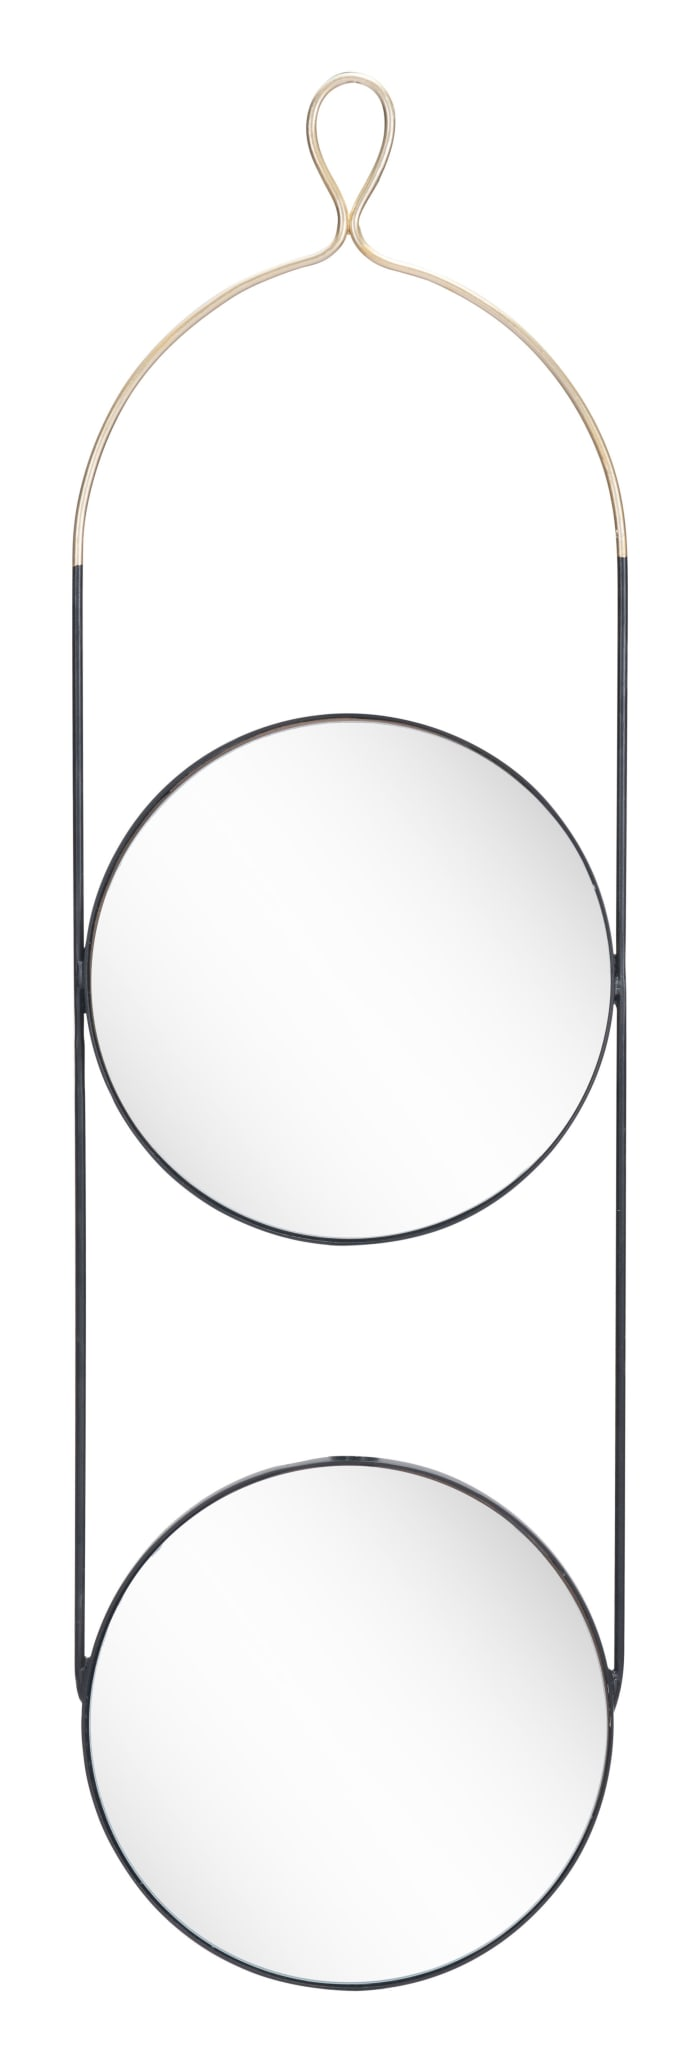 Double Gold and Black Round Hanging Mirror